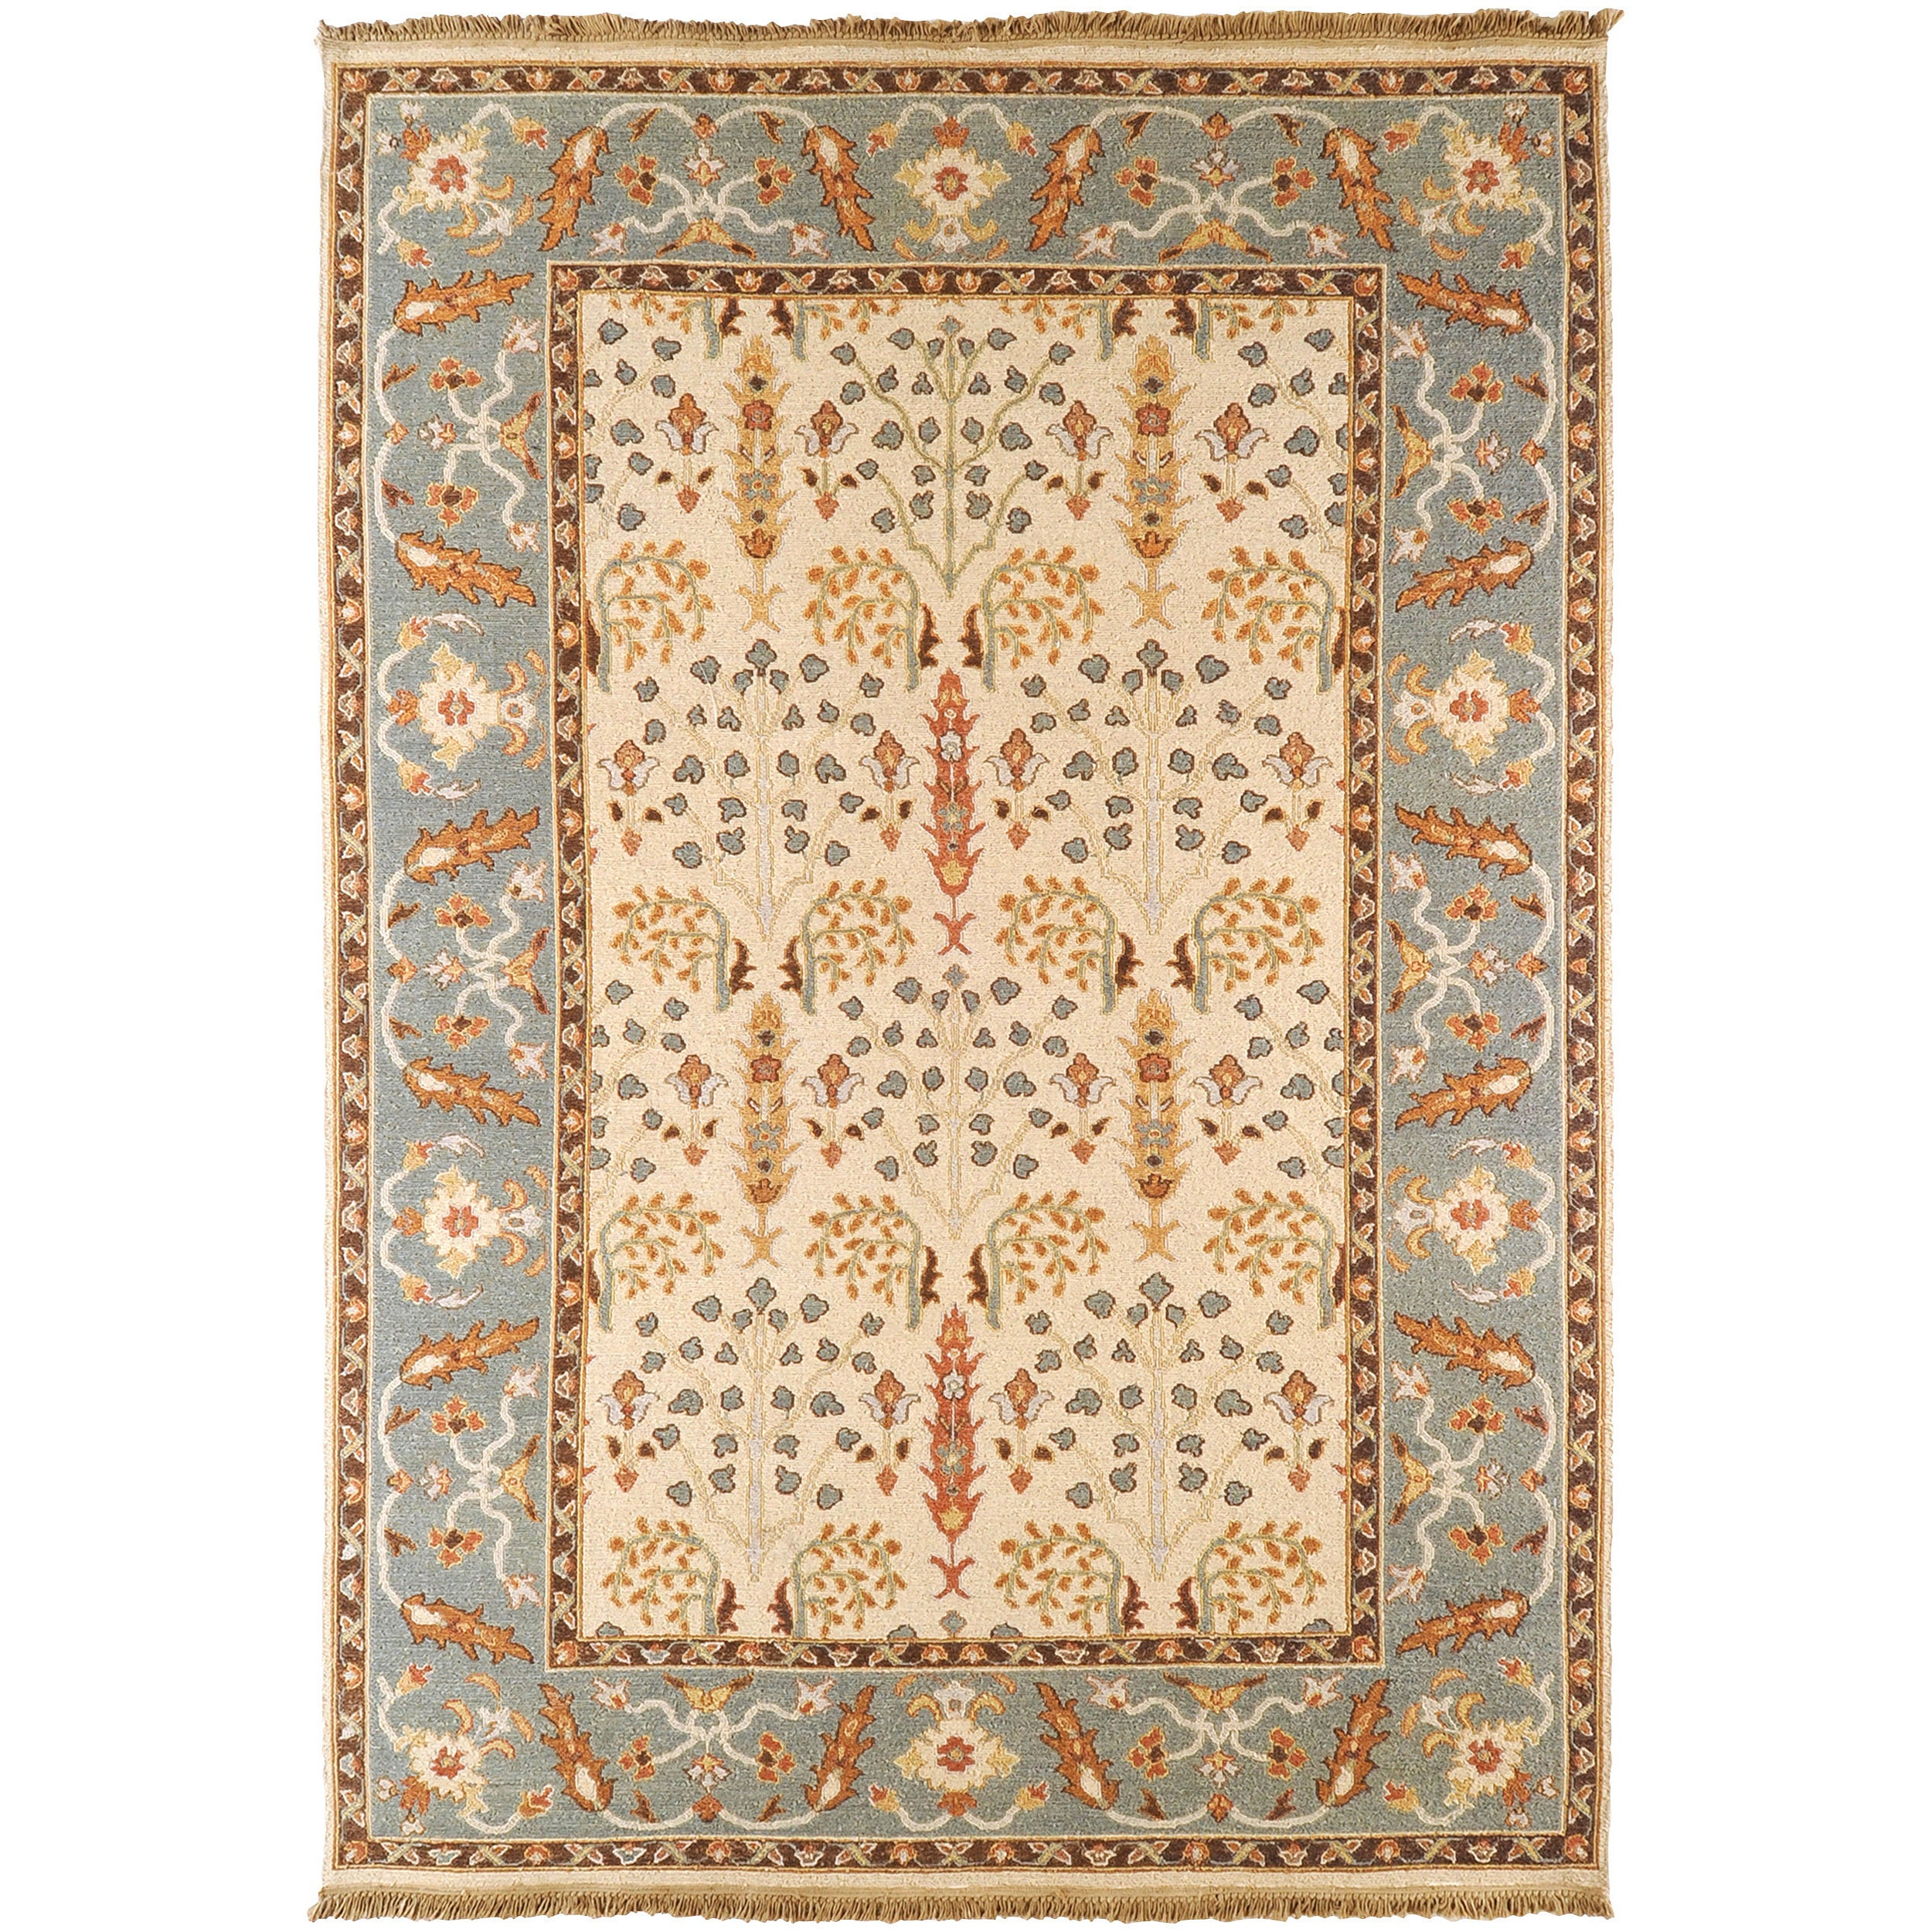 Hand-Knotted Buckhaven Beige/Multi-Colored Traditional Border New Zealand Wool Area Rug - 8' x 10'